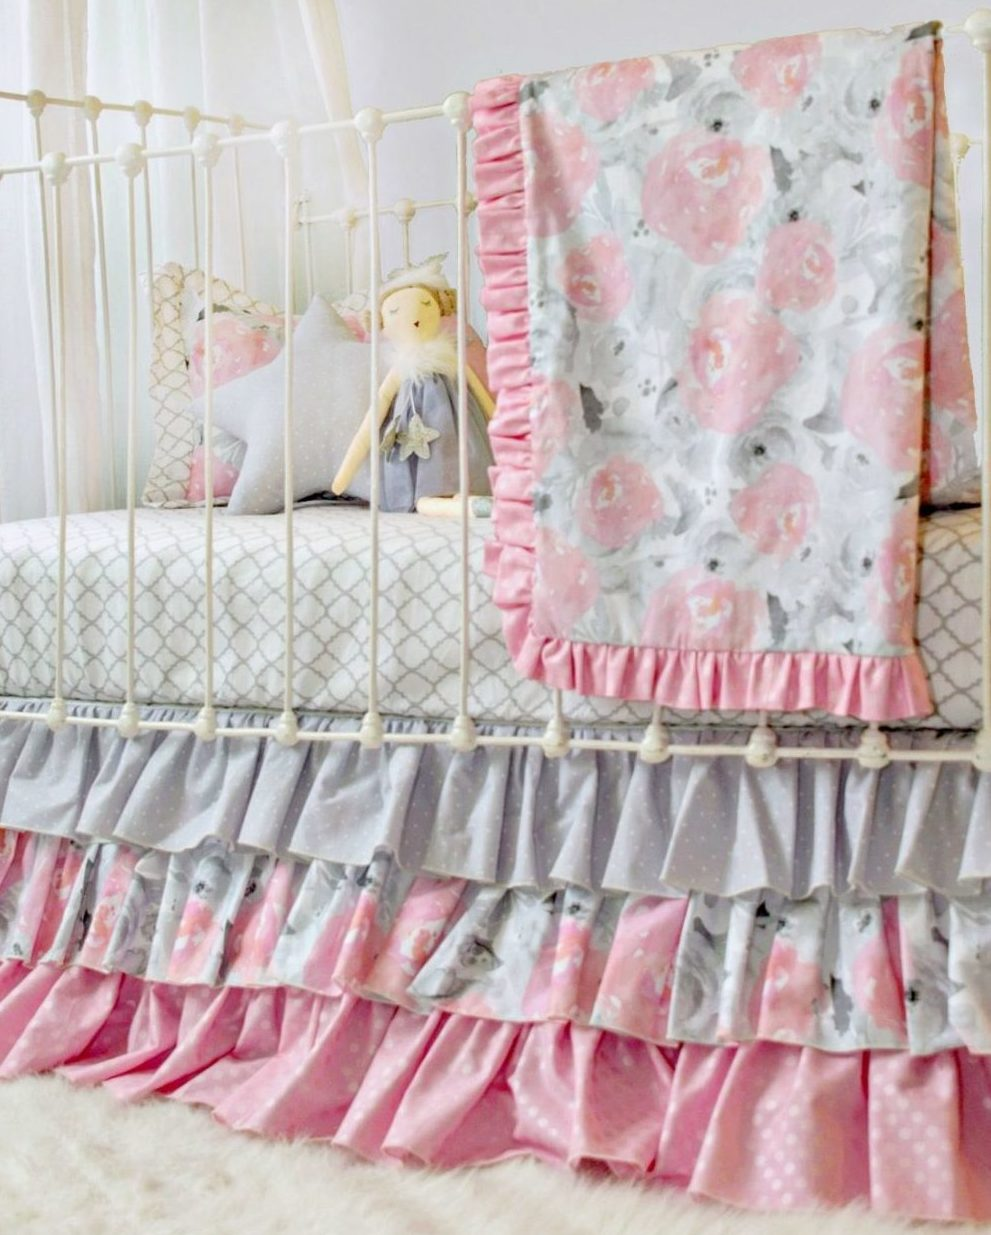 wooden onionskeen the for baby a dreaming of design cribs size small spaces best girl table kid infant com sheets scheme white with your crib bedding make sets full